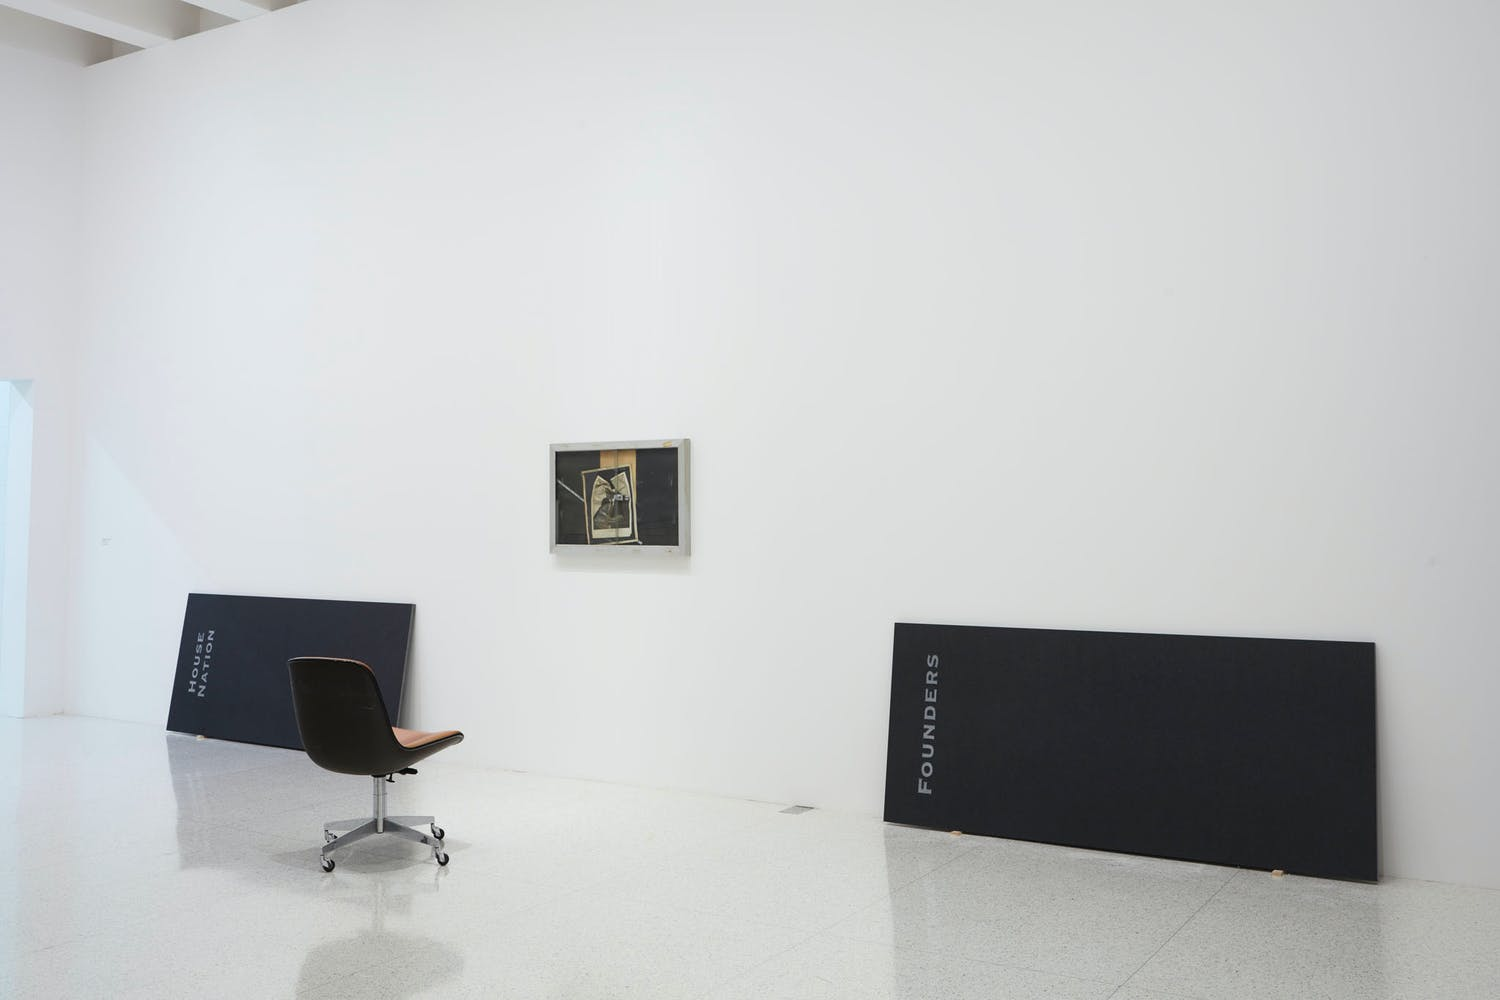 View of the exhibition Question the Wall Itself, 2016; (left to right) Theaster Gates, House Nation Plaque, 2016; Theaster Gates, A Maimed King, 2012; Theaster Gates, Founder's Plaque, 2016 (Photo: Gene Pittman, ©Walker Art Center)